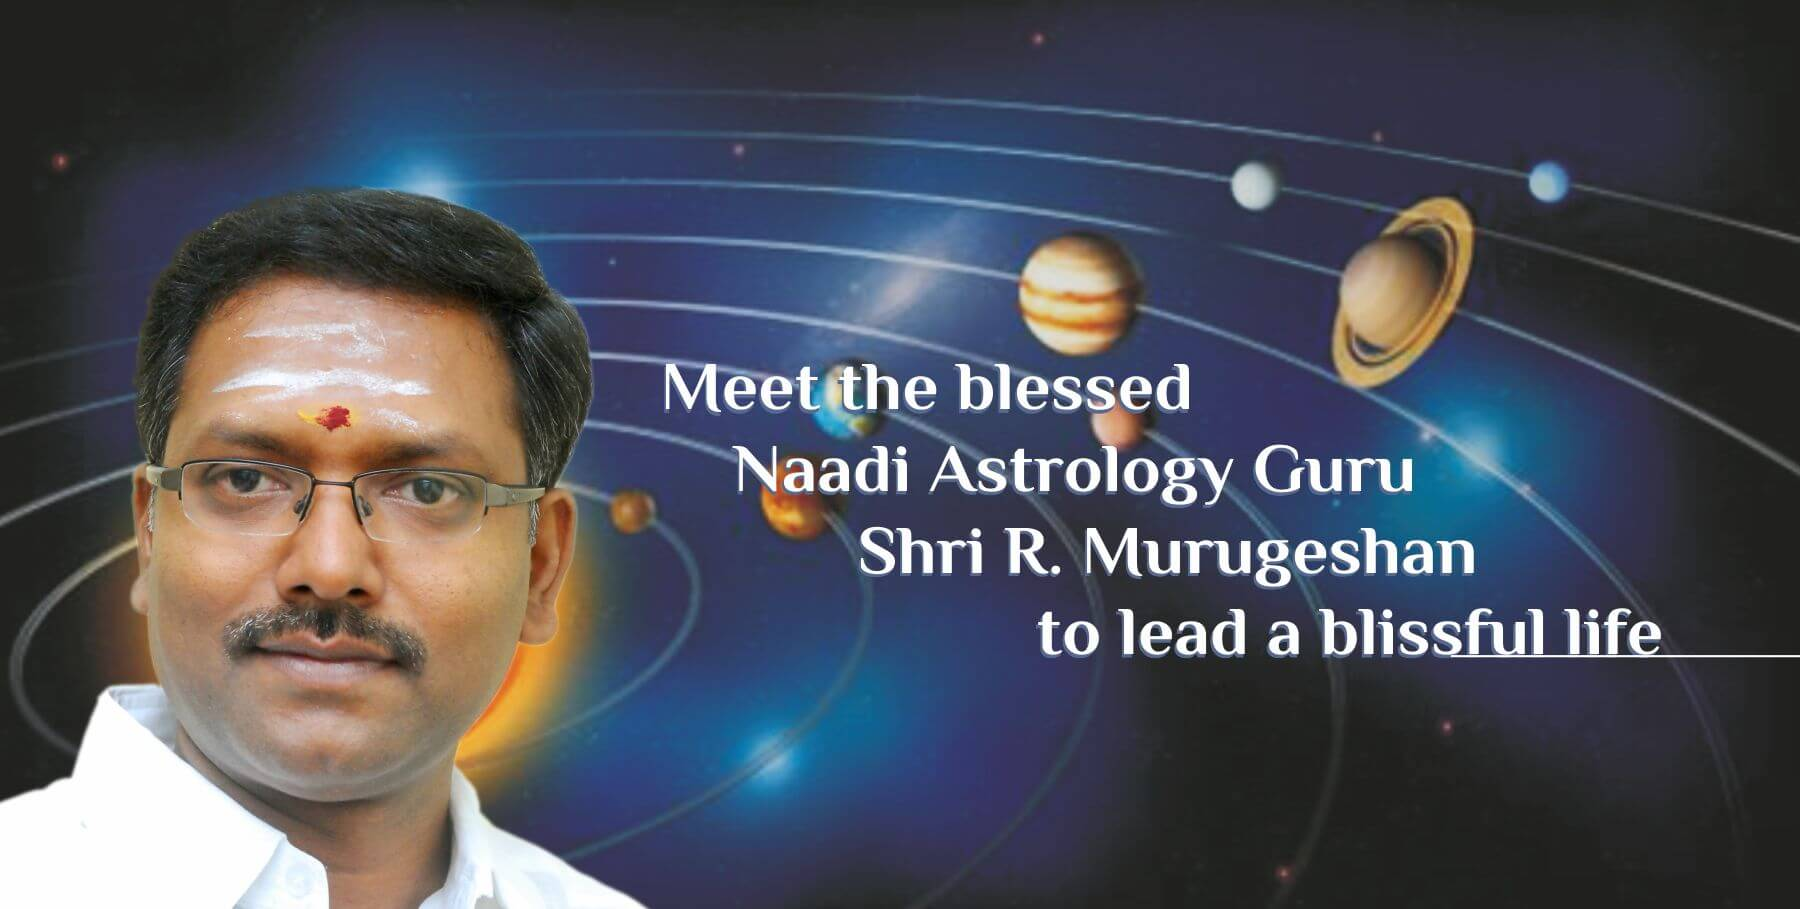 Meet the blessed Naadi Astrology Guru Shri R. Murugeshan to lead a blissful life